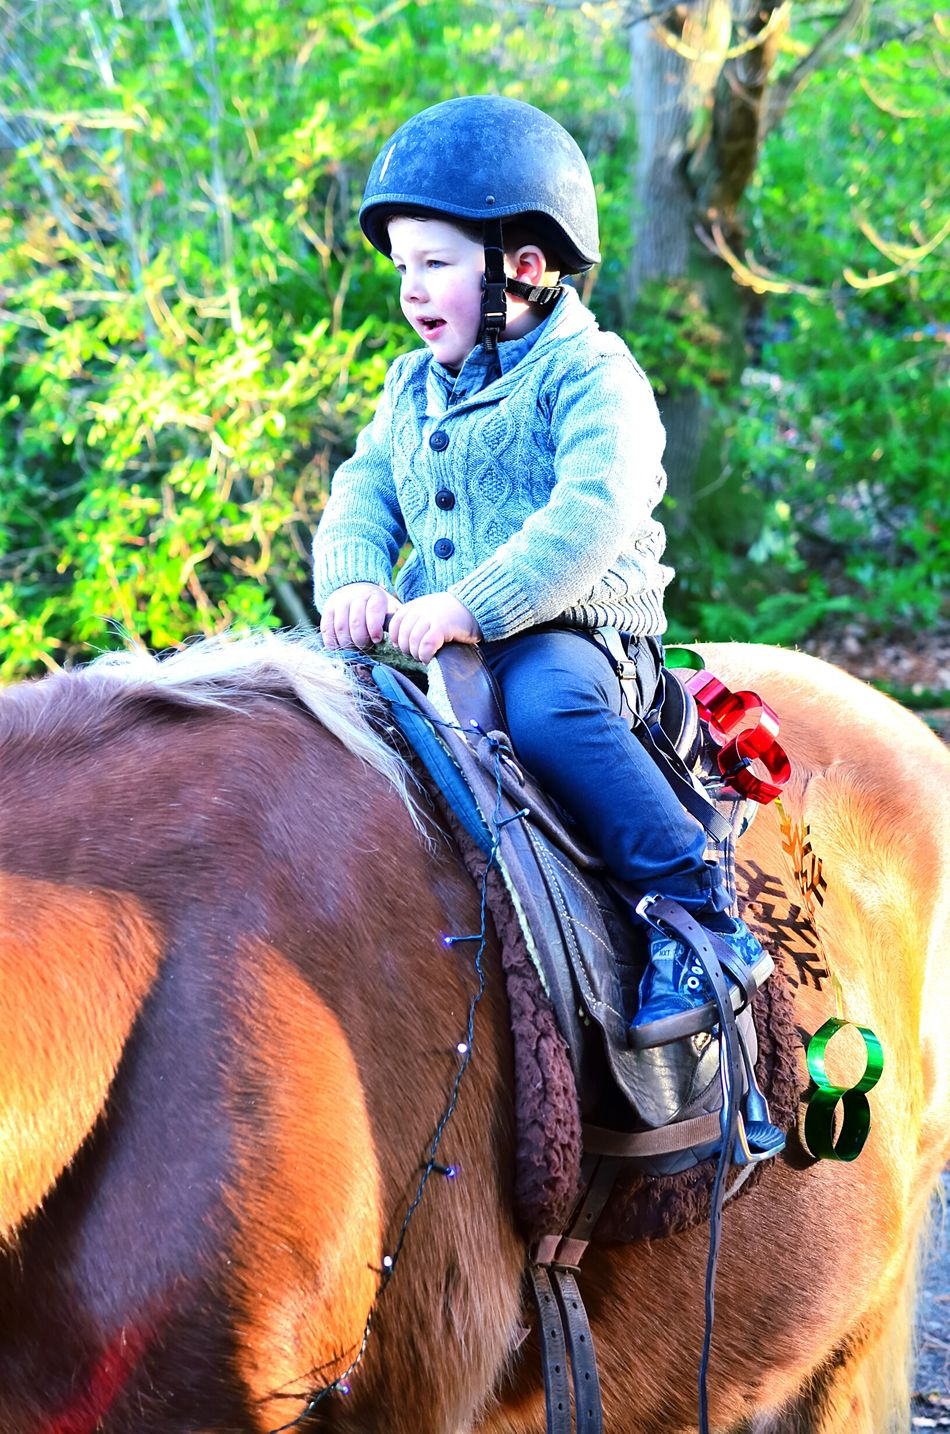 Horse Outdoors Togetherness Leisure Activity Happiness Kelburn Kelburncastle Christmastime Nikon Check This Out Nature Portrait 40mmlens